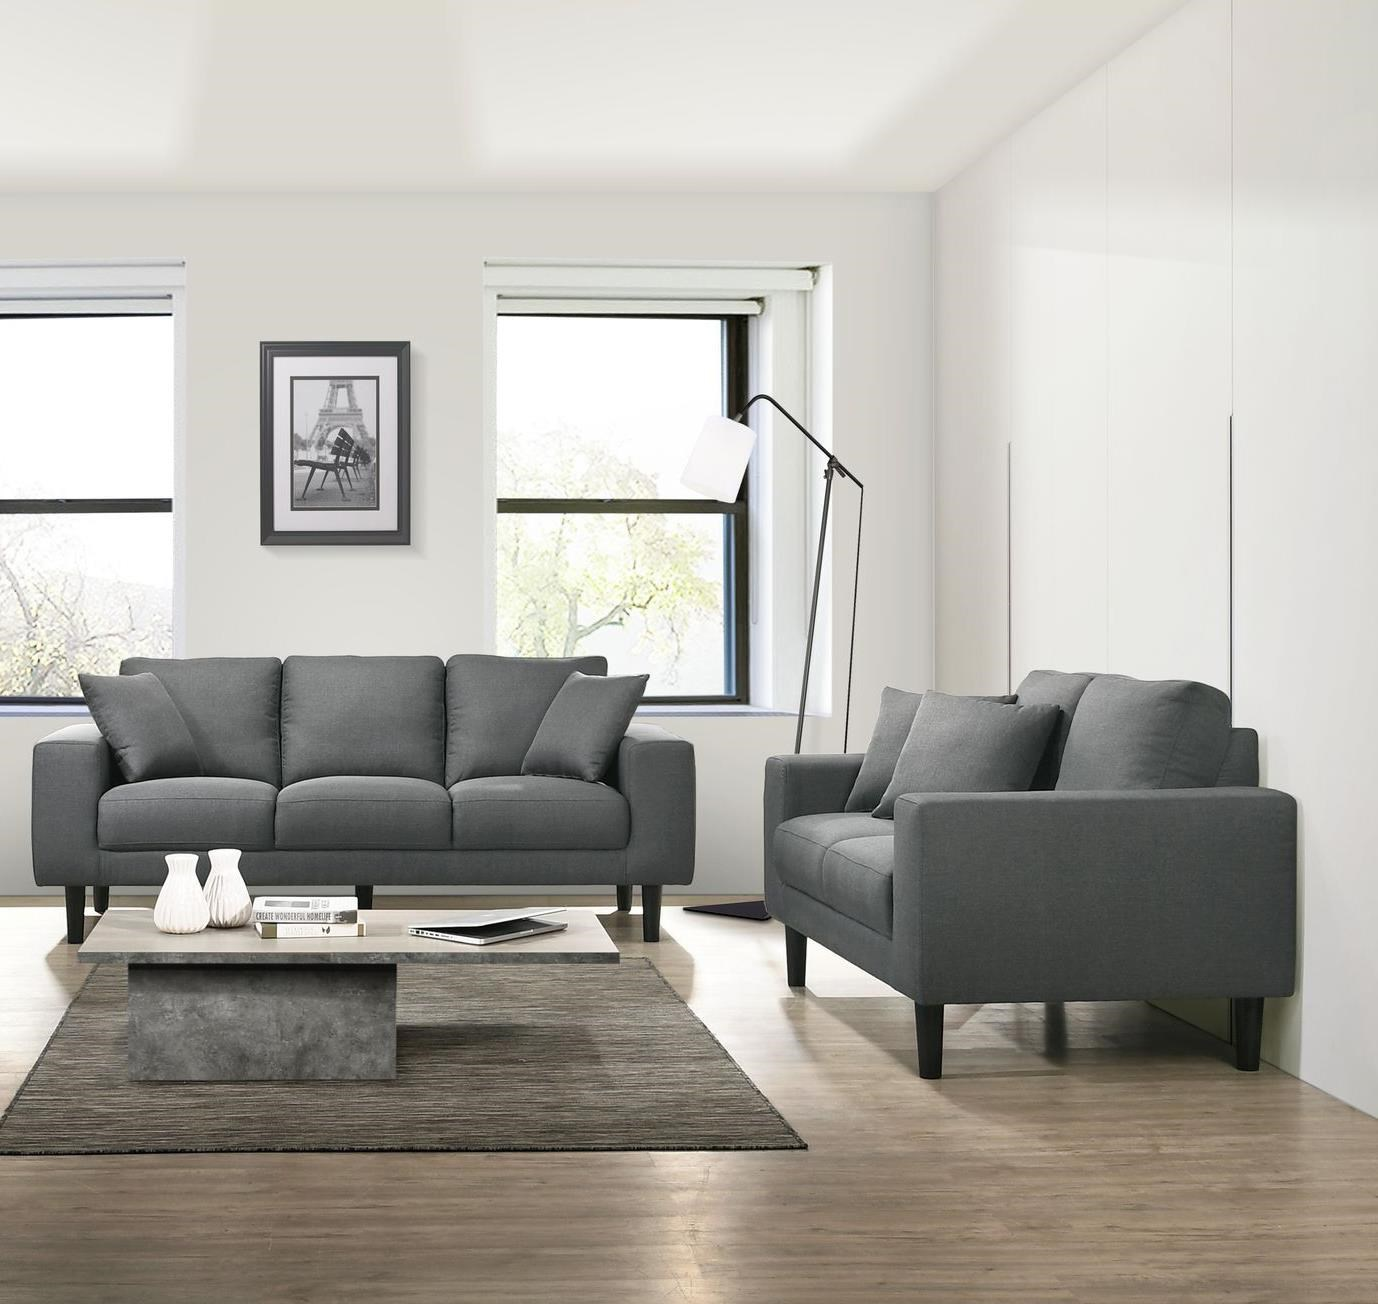 Picture of: Elements International Apollo Midnight Usp 3450 302pl 201pl Grey Sofa And Loveseat Living Room Set Sam Levitz Furniture Stationary Living Room Groups